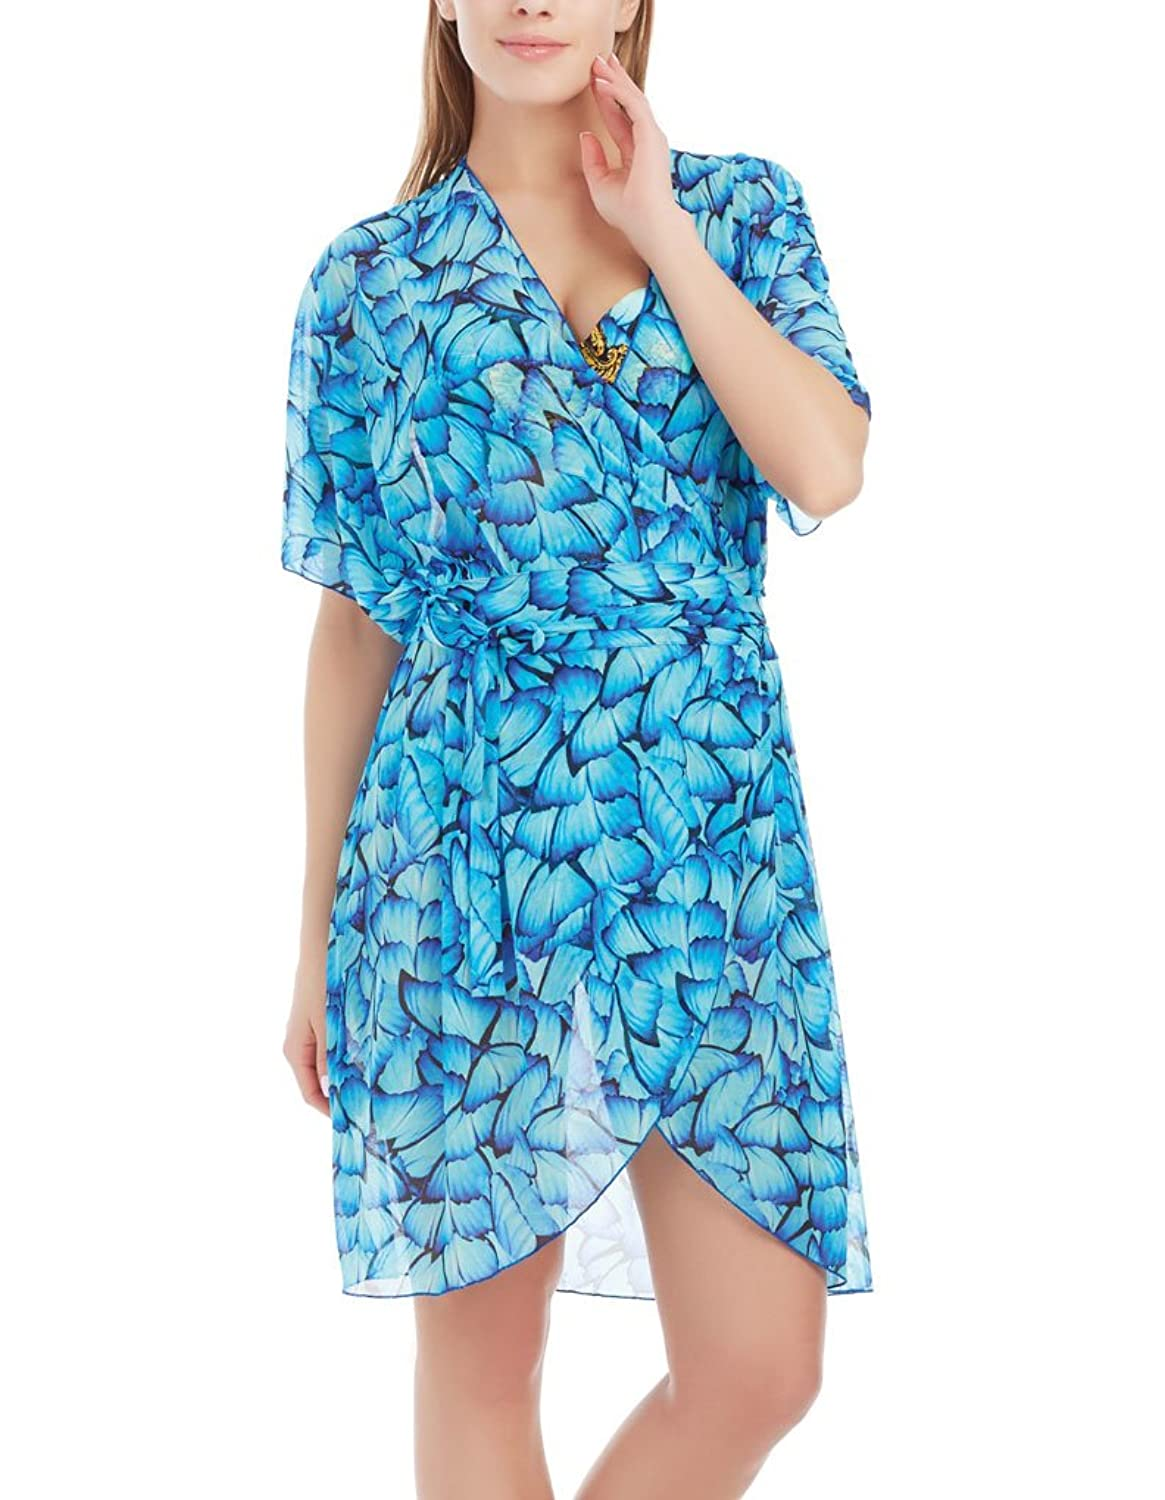 Marc and Andre CU17-02-1703 Women's Blue Butterfly Beachwear Cover Up